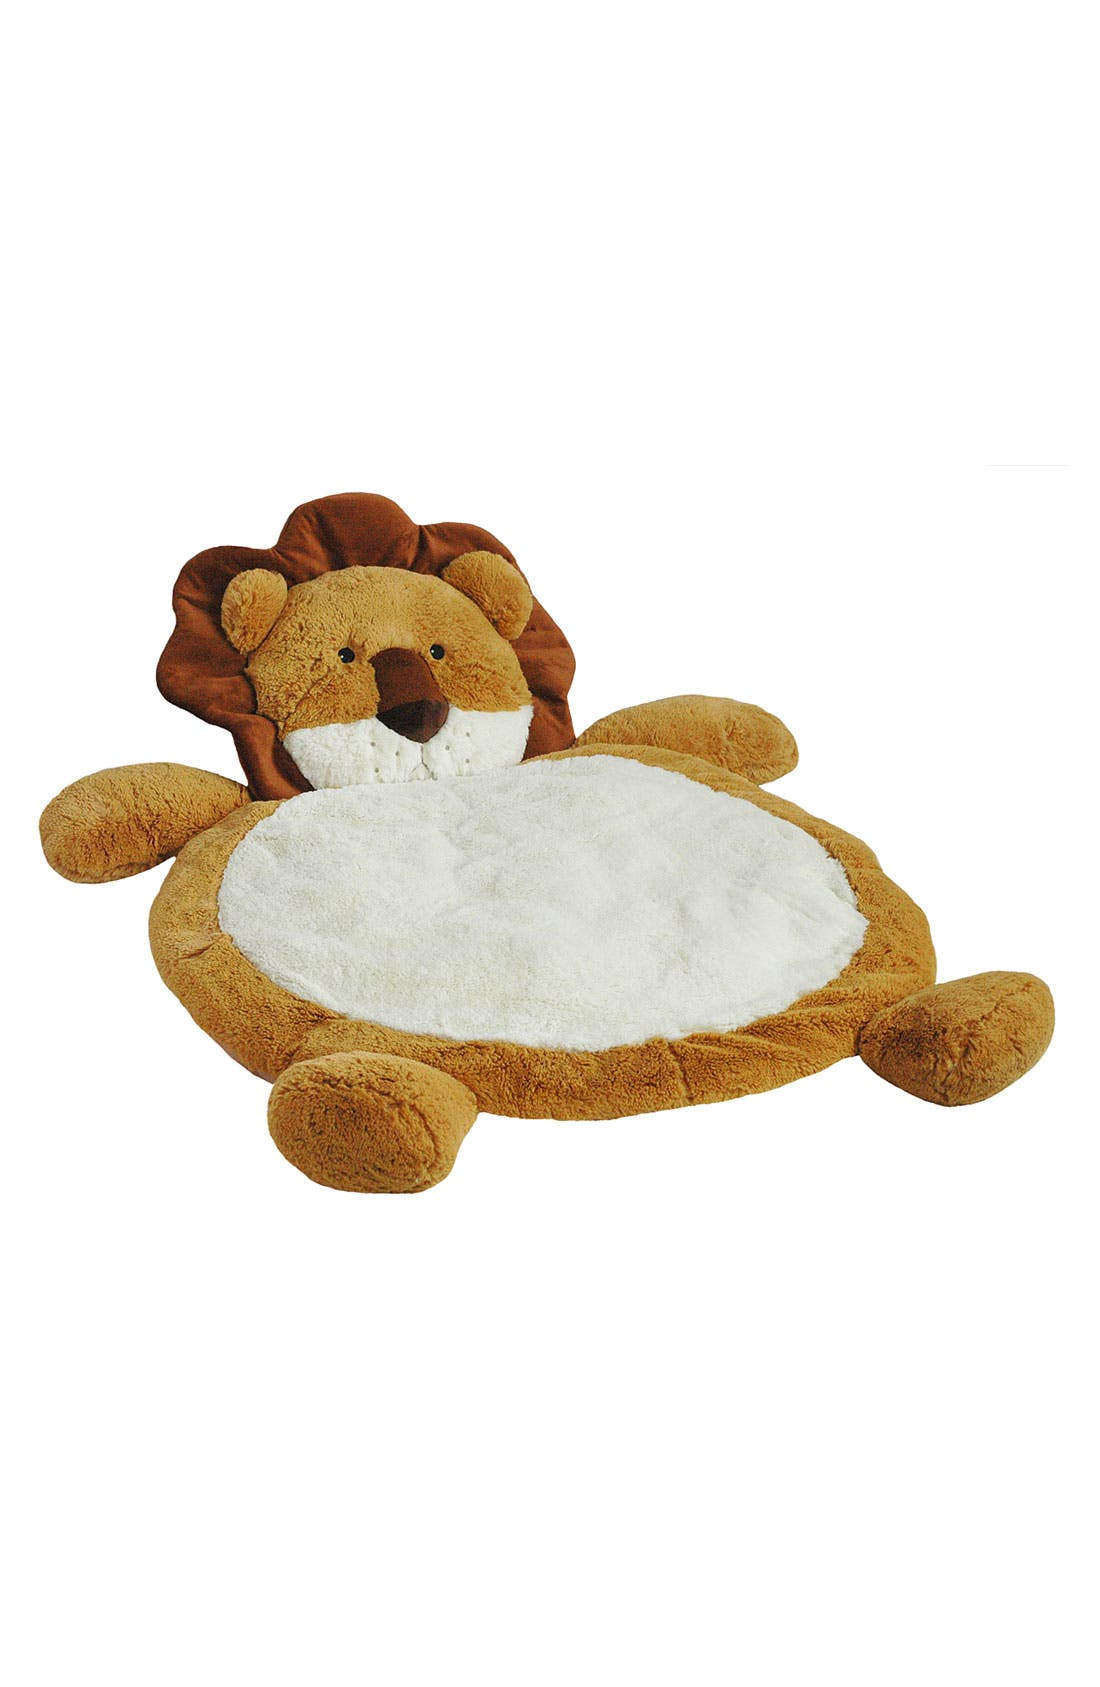 Alternate Image 1 Selected - Bestever 'In Baby' Plush Mat